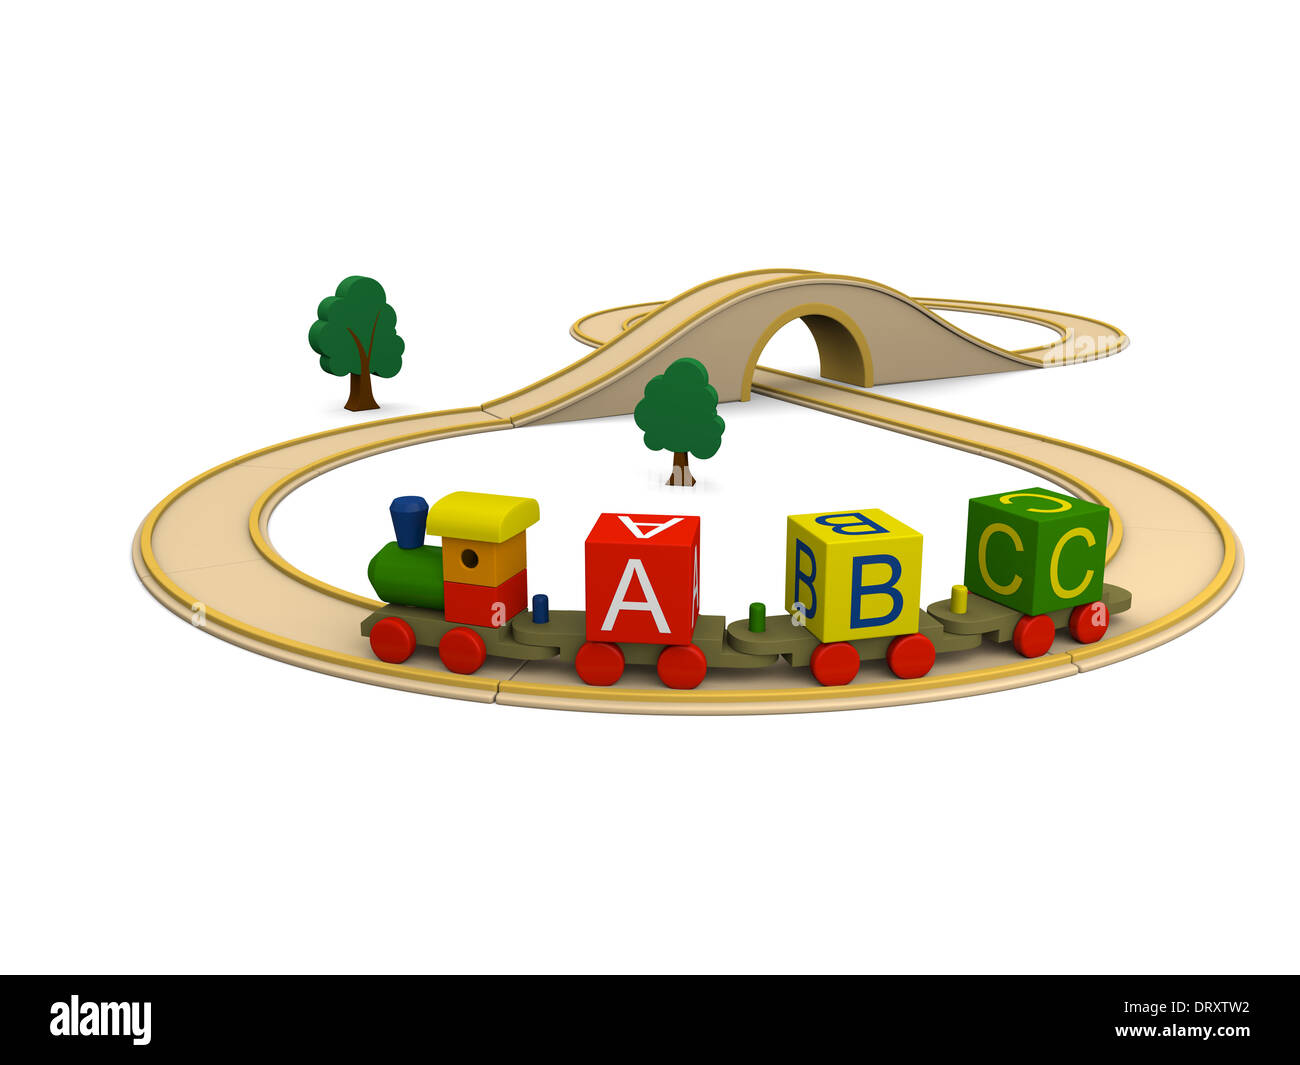 3D illustration of colorful wooden toy train carrying alphabet letters Stock Photo